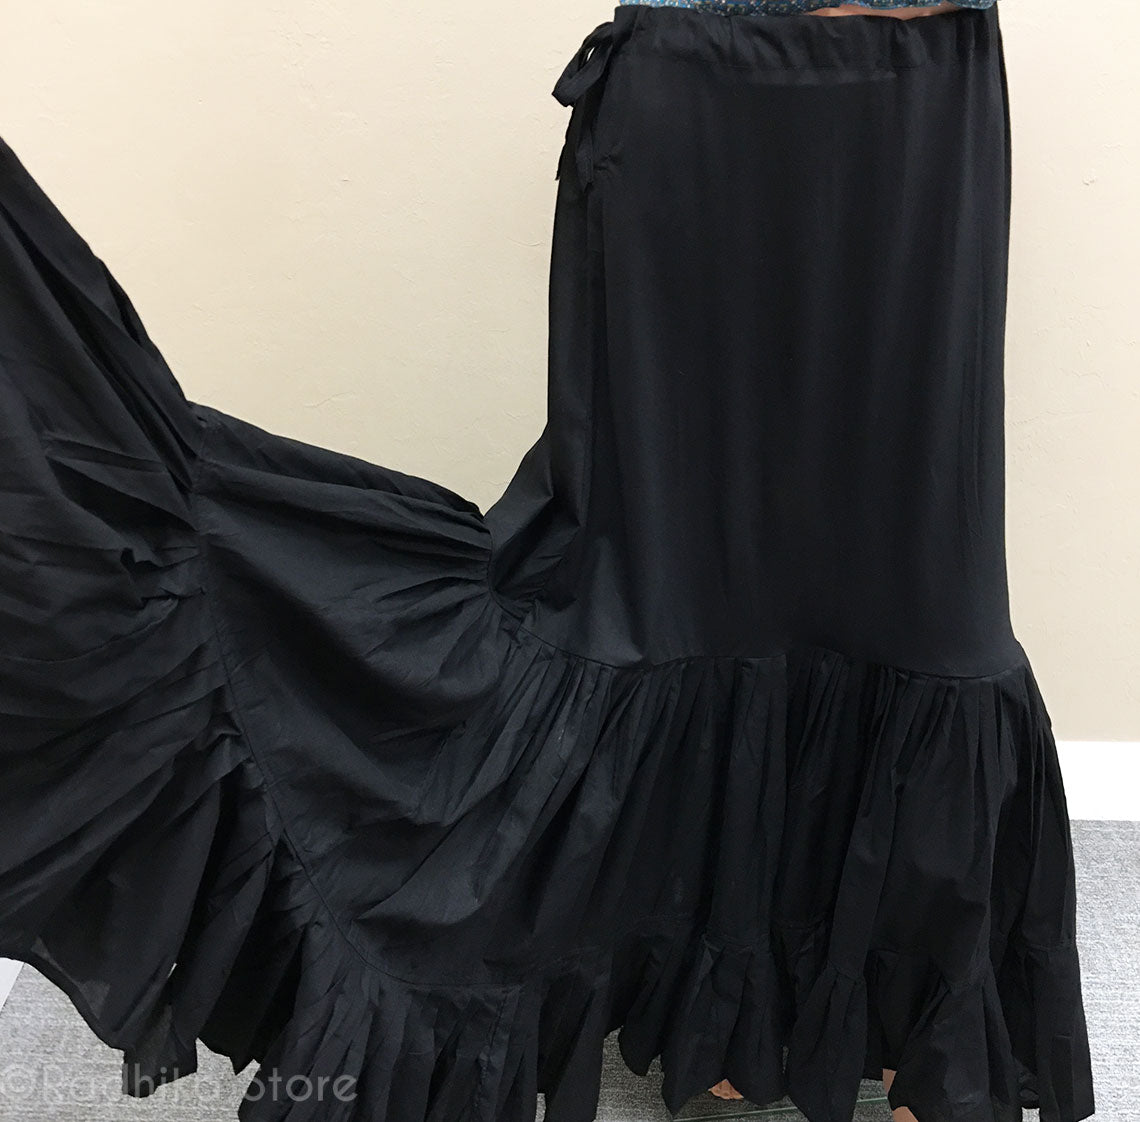 Black Cotton Twirling Petticoat/ Slip - S, M, L (8 Meters Fabric)